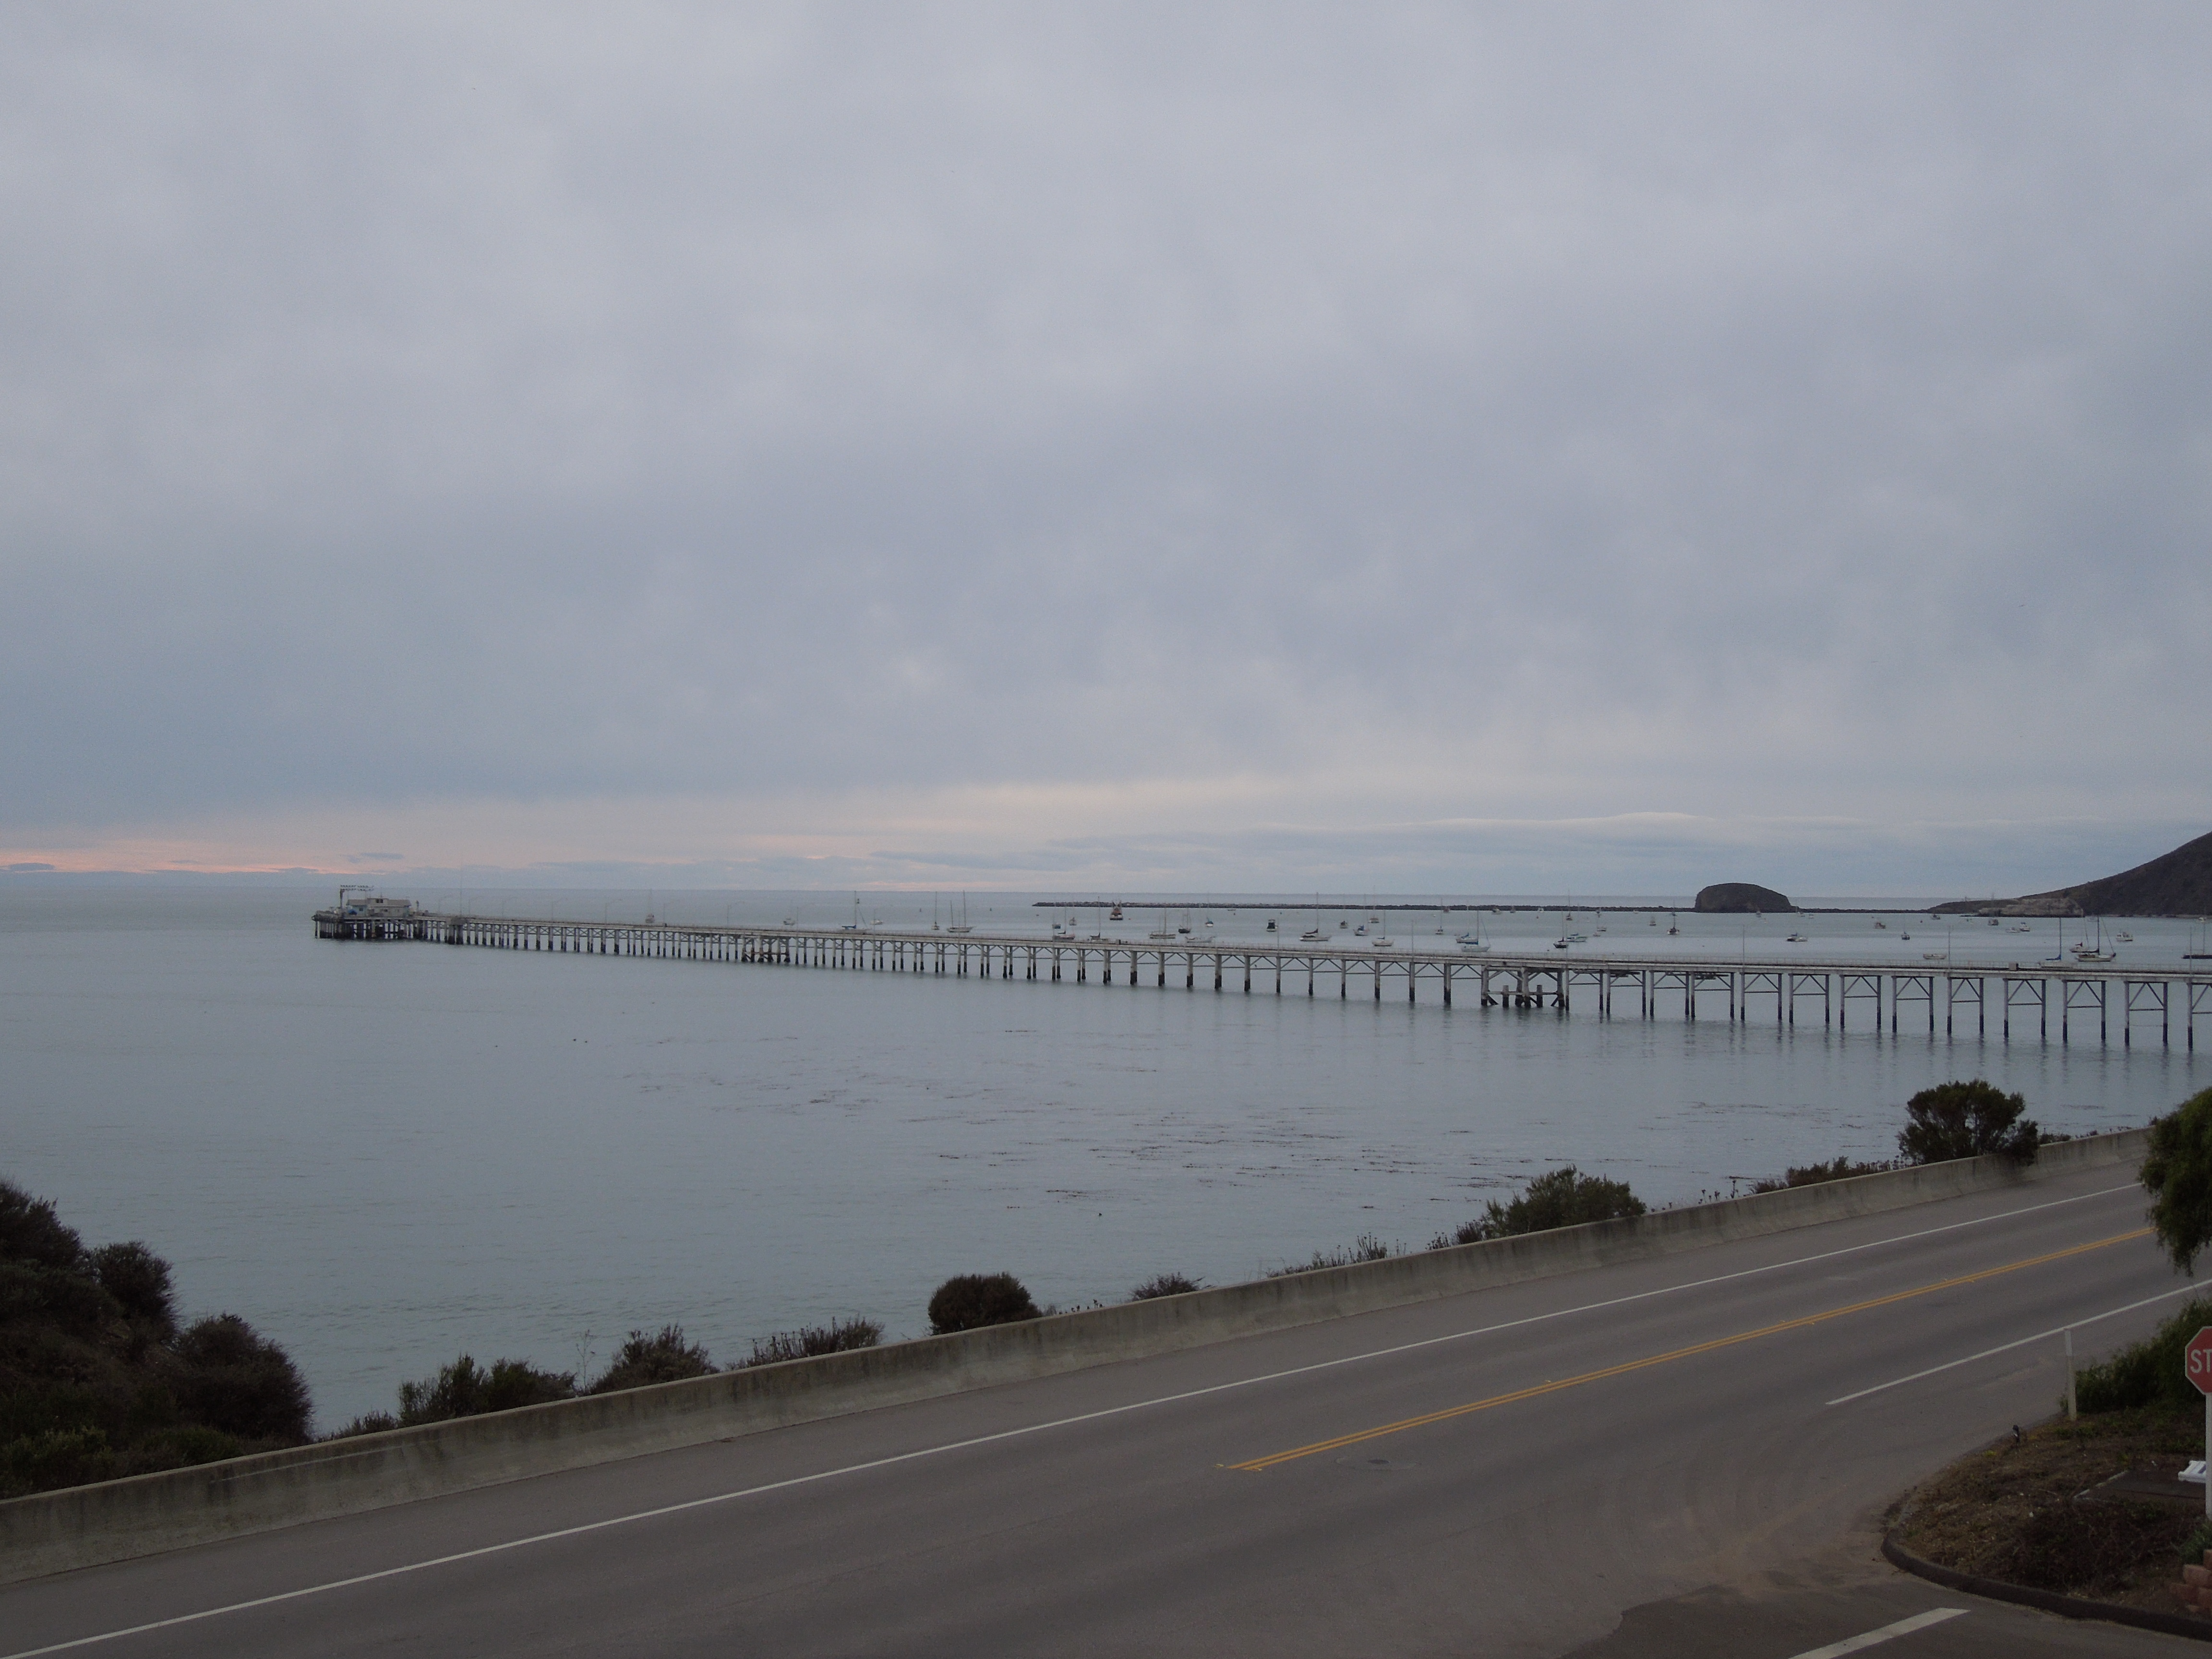 Piers at Avila Beach, California on a Cloudy December Day